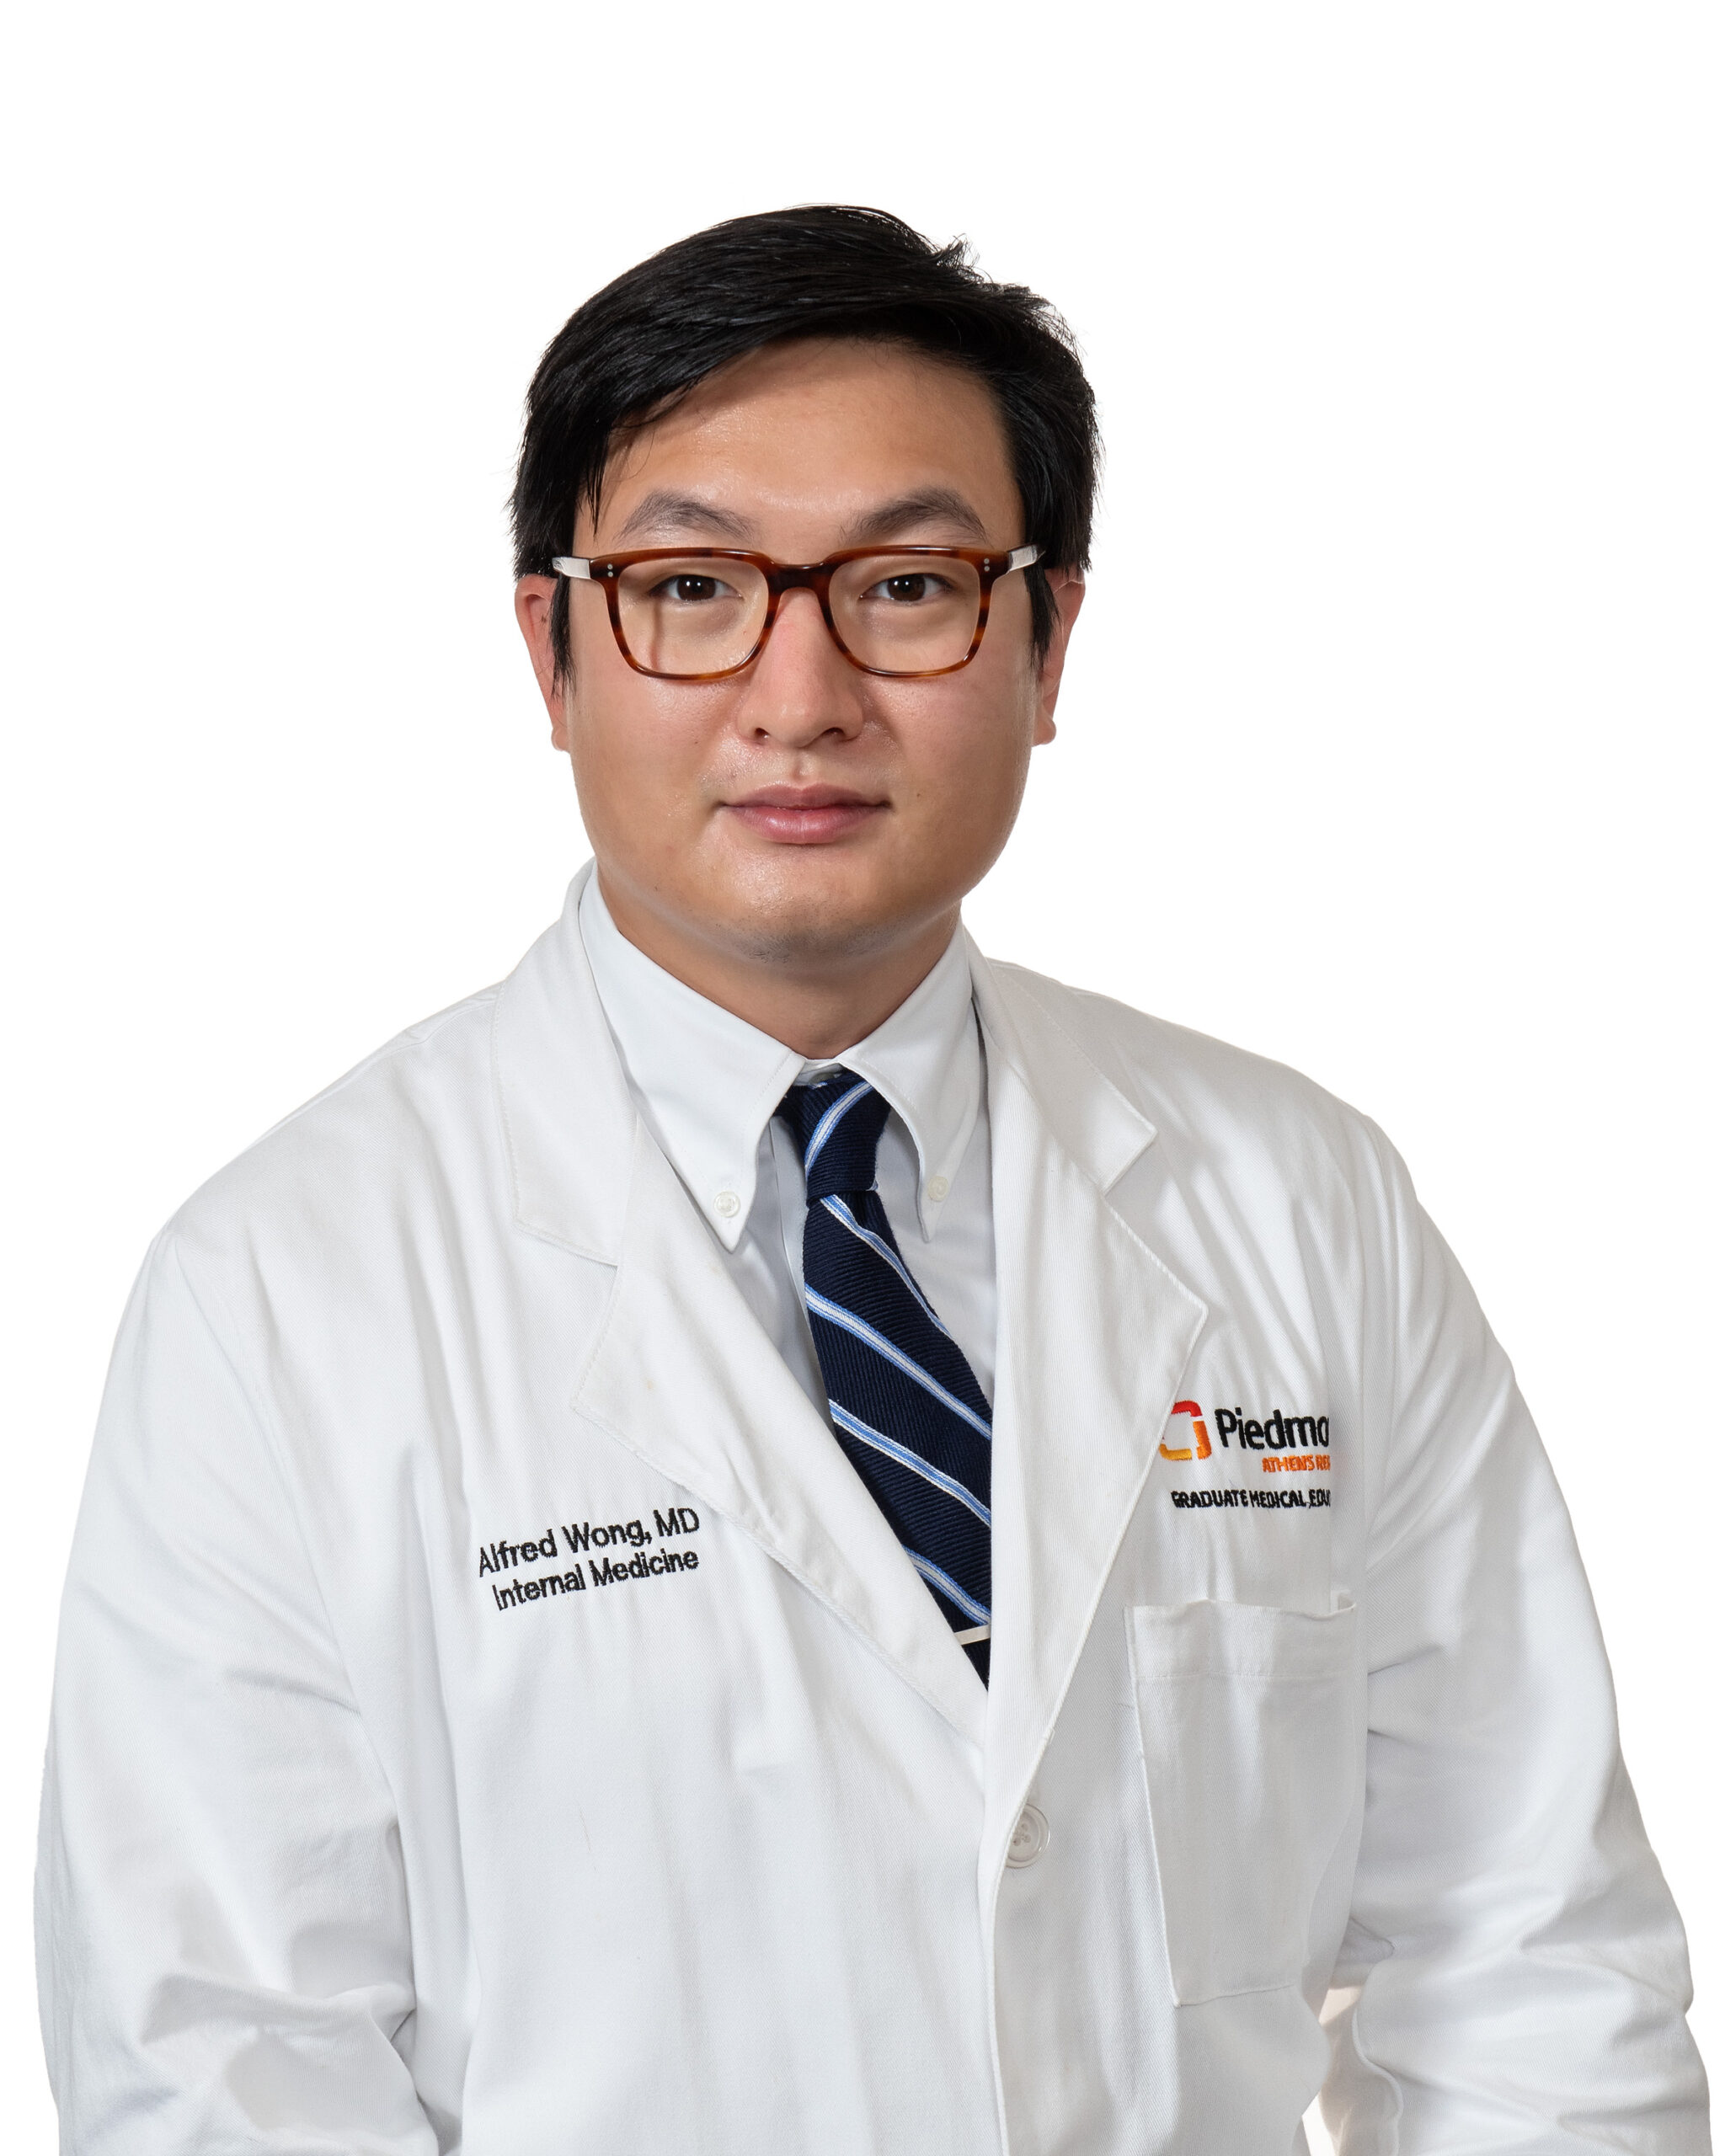 Alfred Wong, MD